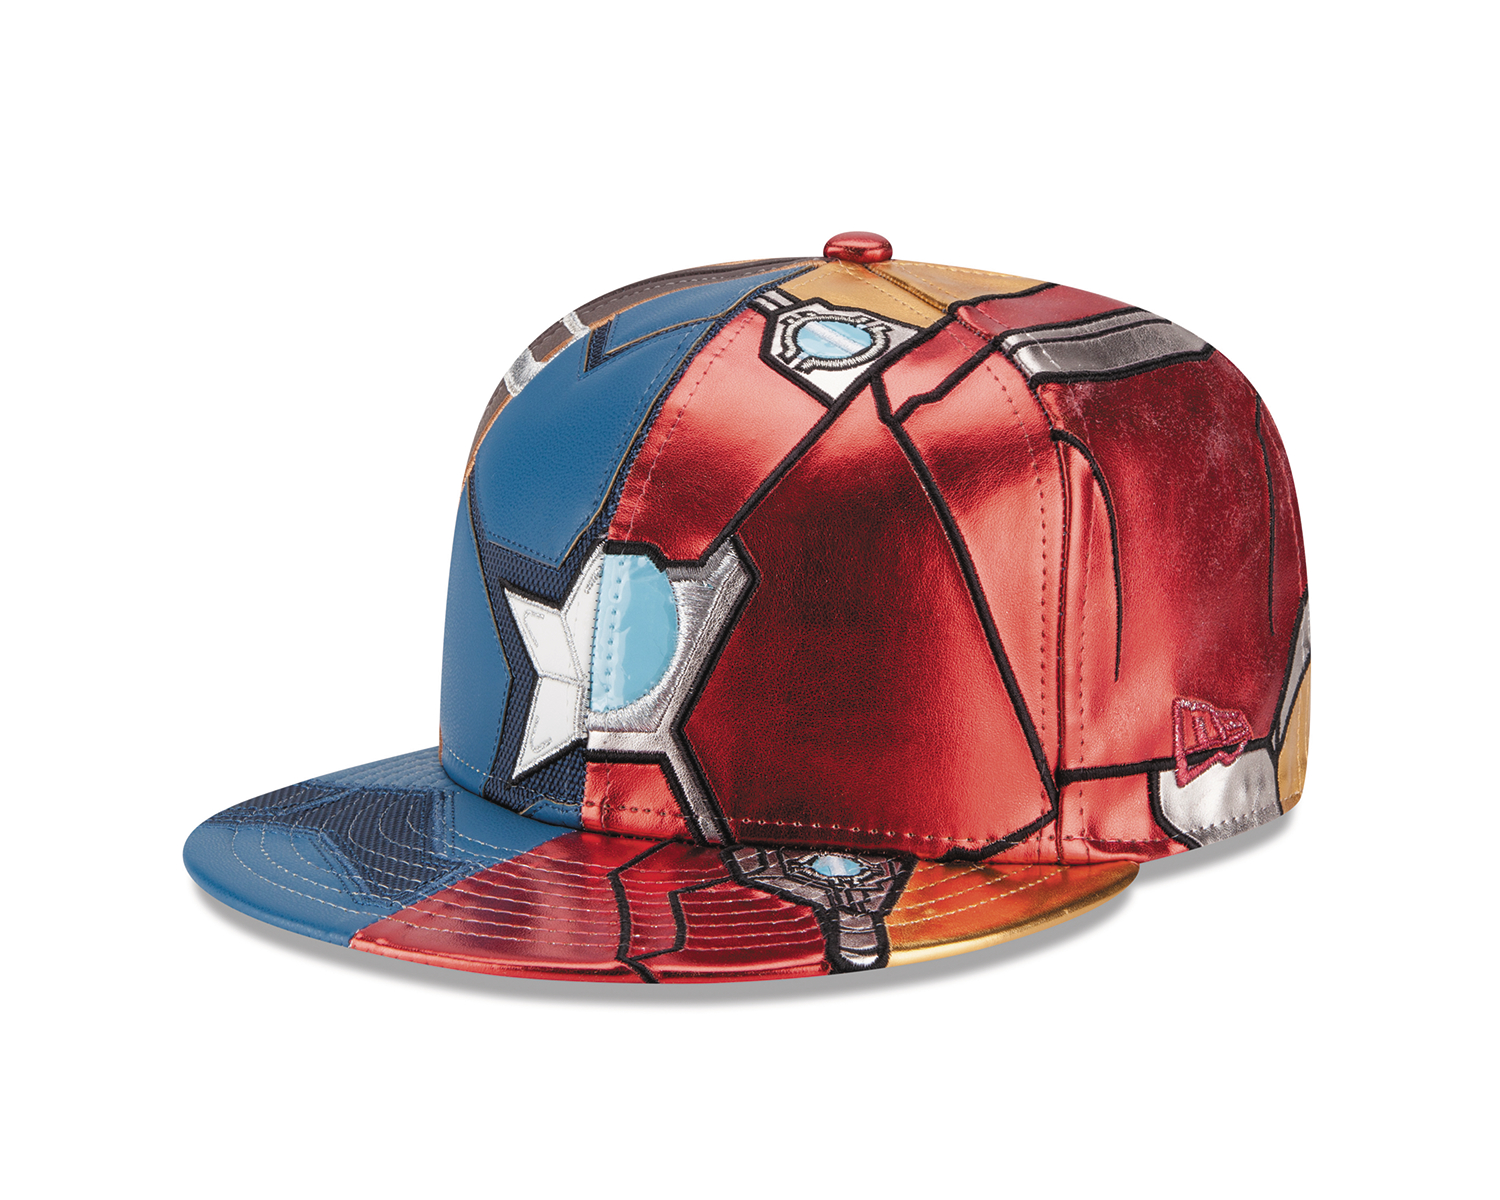 CAPTAIN AMERICA 3 CHARACTER ARMOR SPLIT FITTED CAP SZ 7 1/8